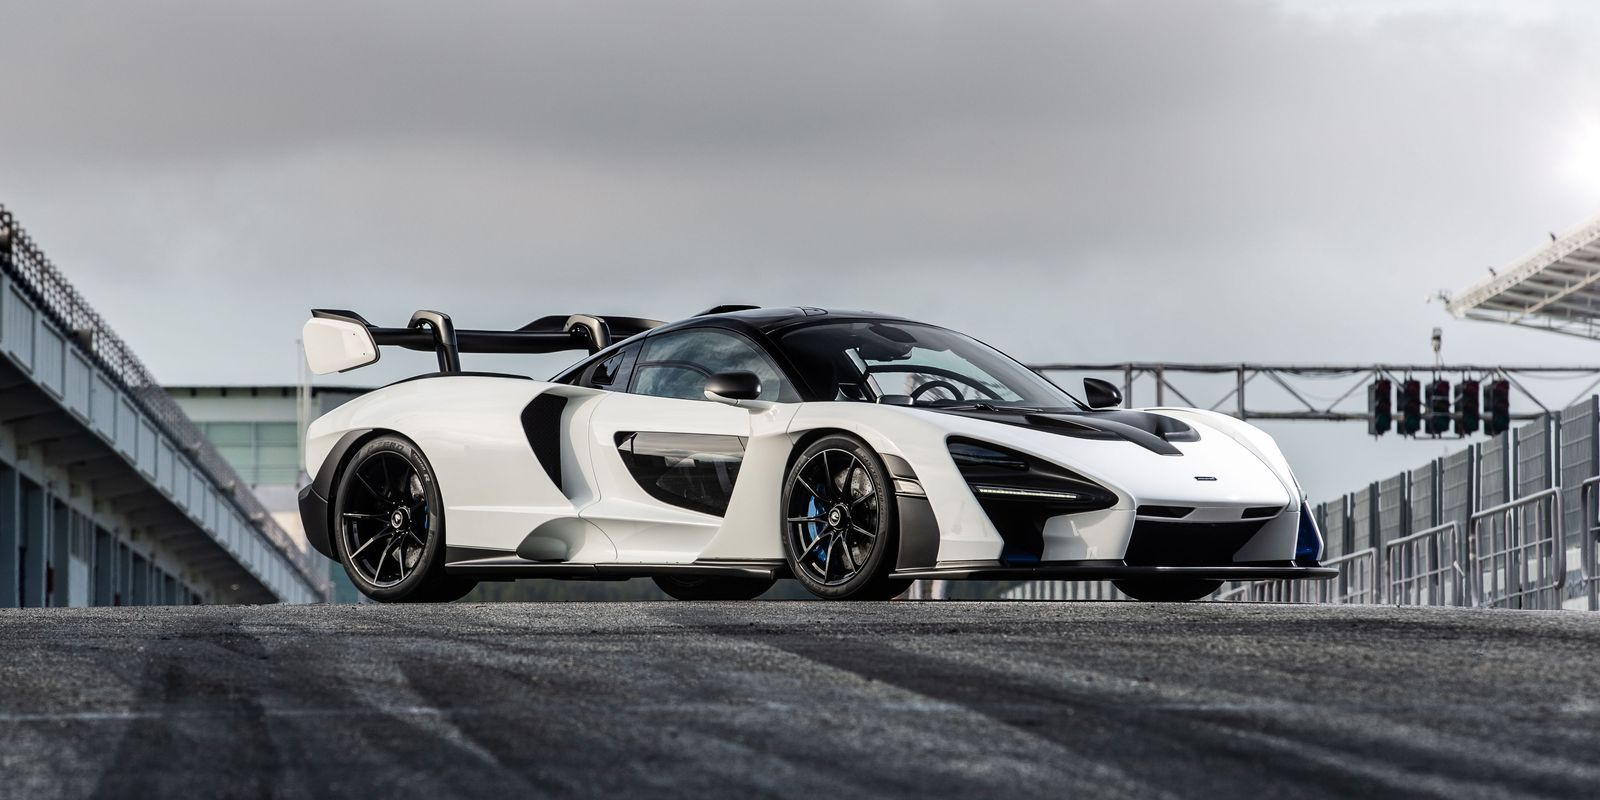 50 Cars With The Best Names Ever In 2020 Super Cars Cool Cars Mclaren